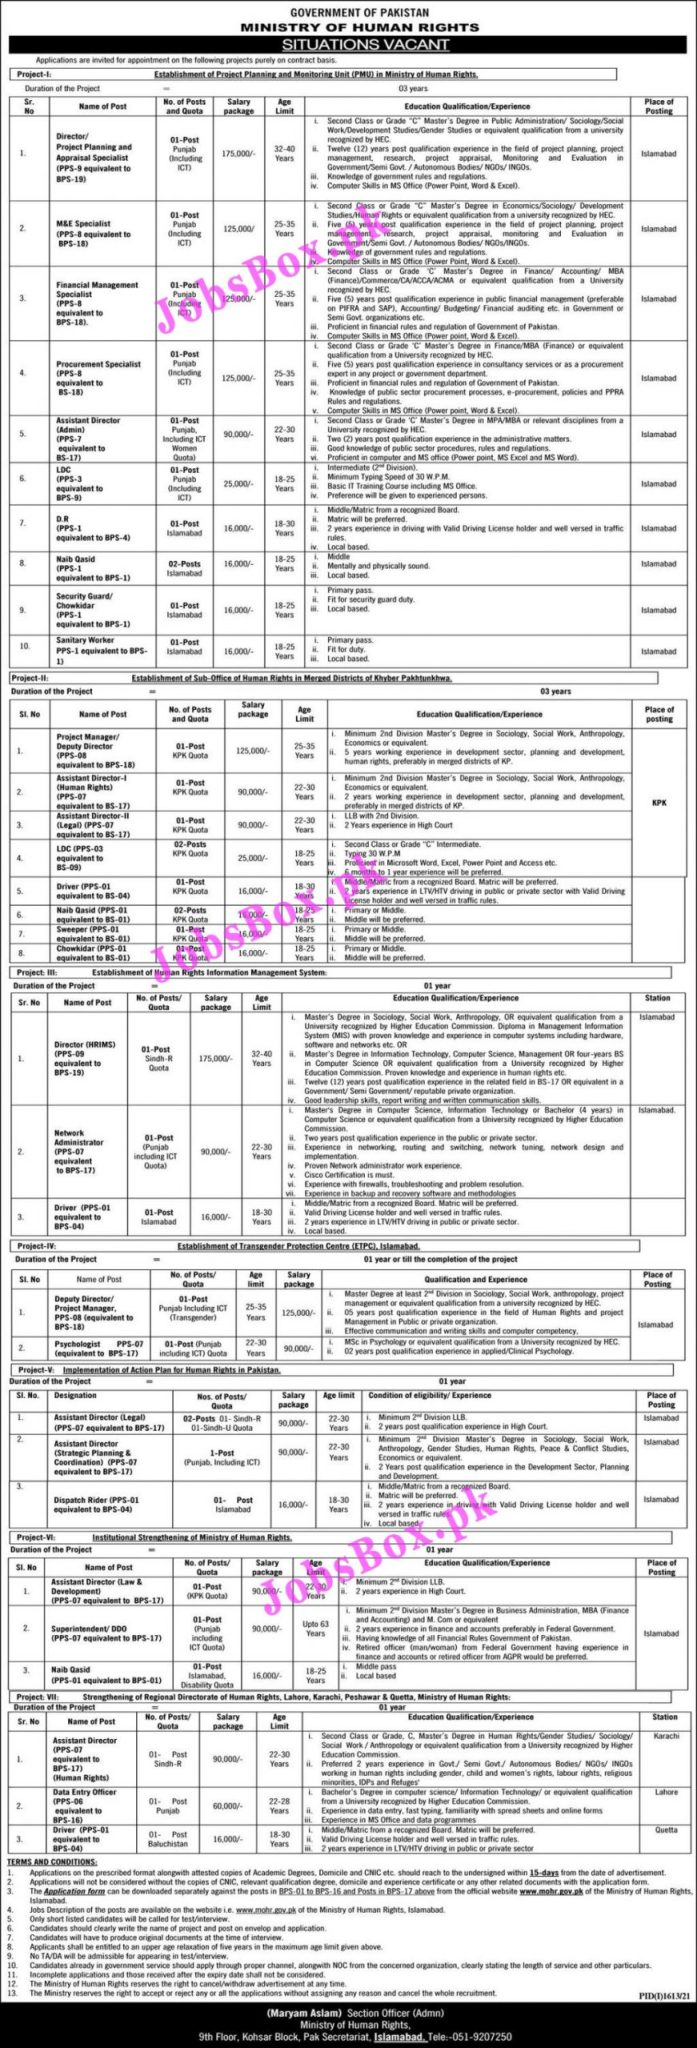 www.mohr.gov.pk - MOHR Ministry of Human Rights Jobs 2021 in Pakistan